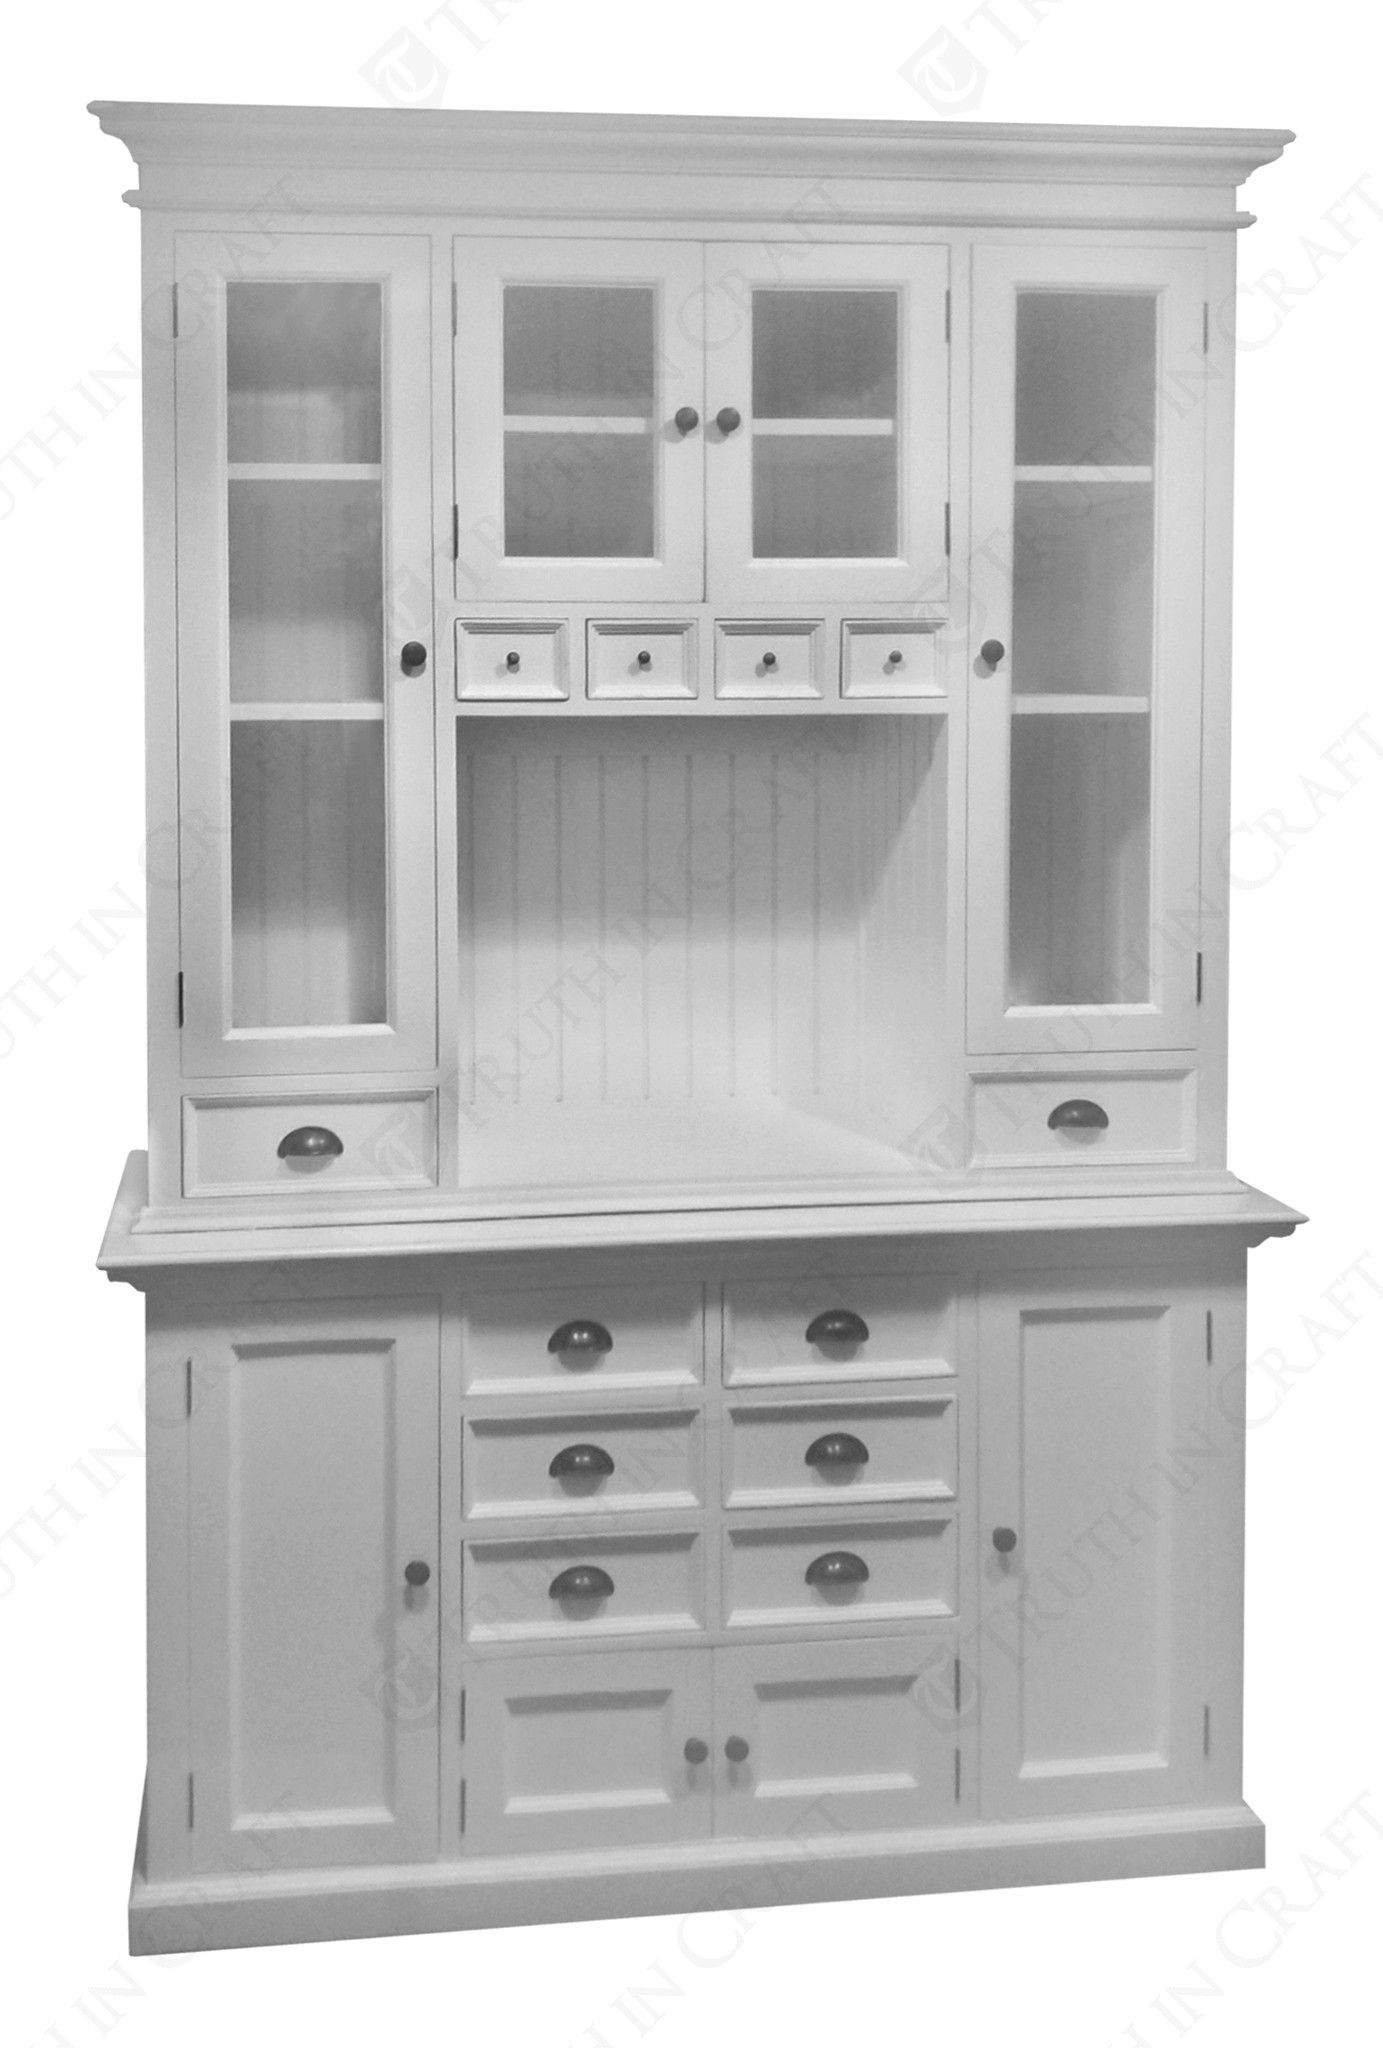 Halifax Kitchen Hutch Cabinet in White Distressed Mahagony by Nova Solo |  BCA597 - Halifax Kitchen Hutch Cabinet In White Distressed Mahagony By Nova